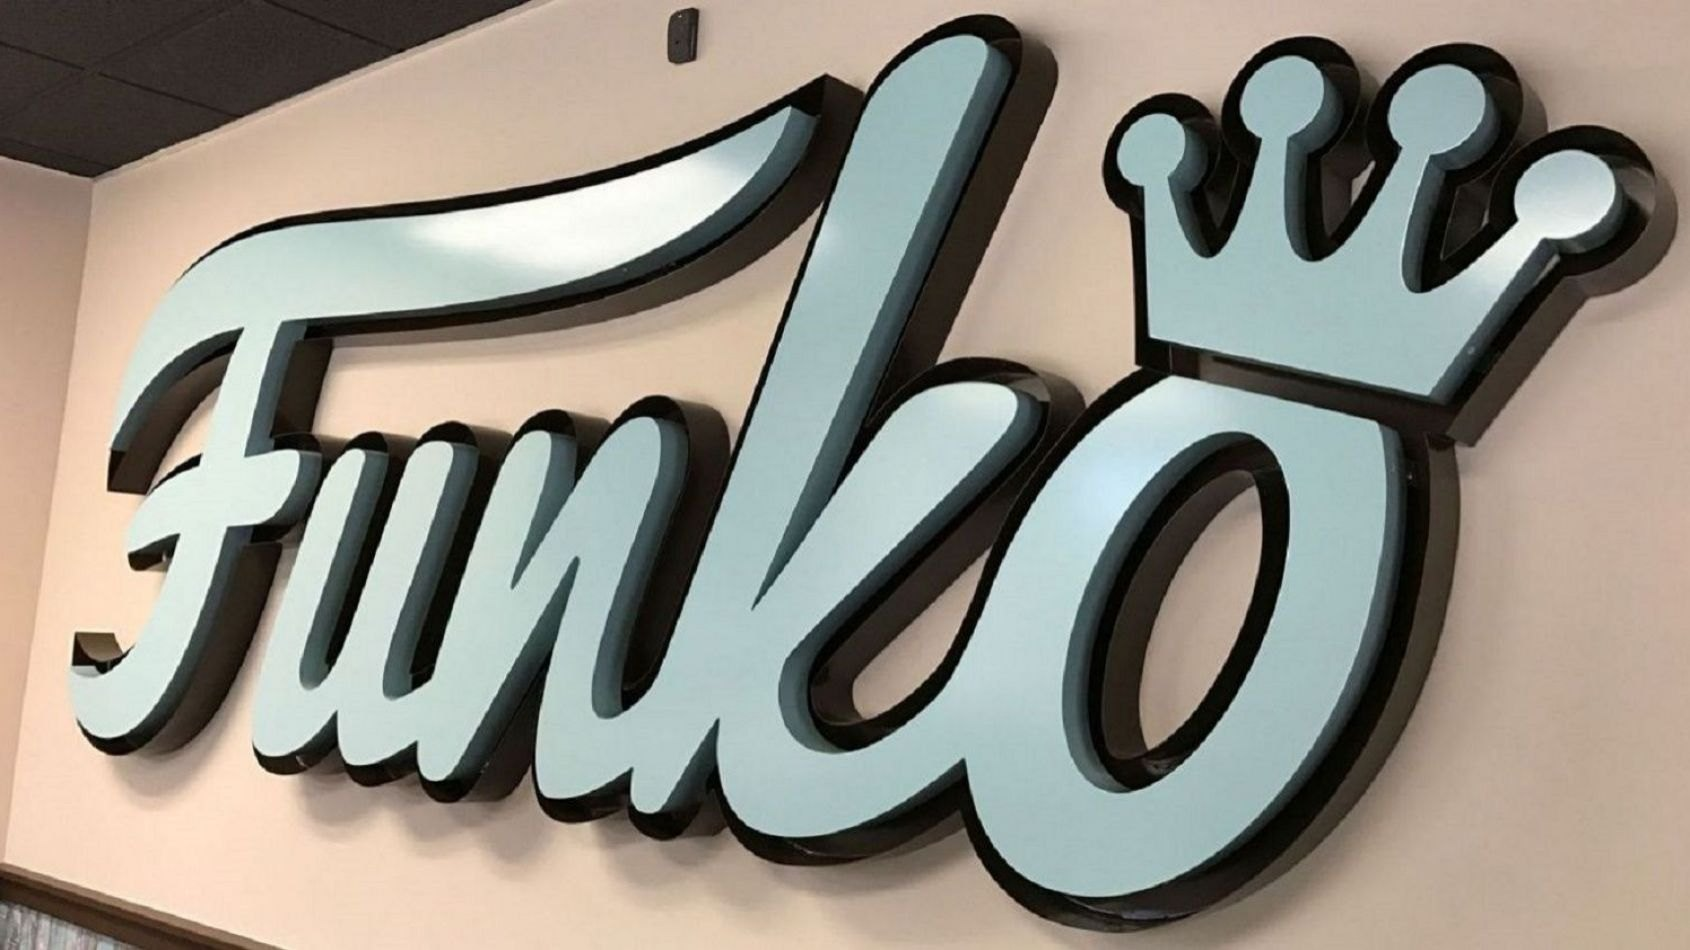 Les Funko Pop exclusives pour la Disney D23 Expo